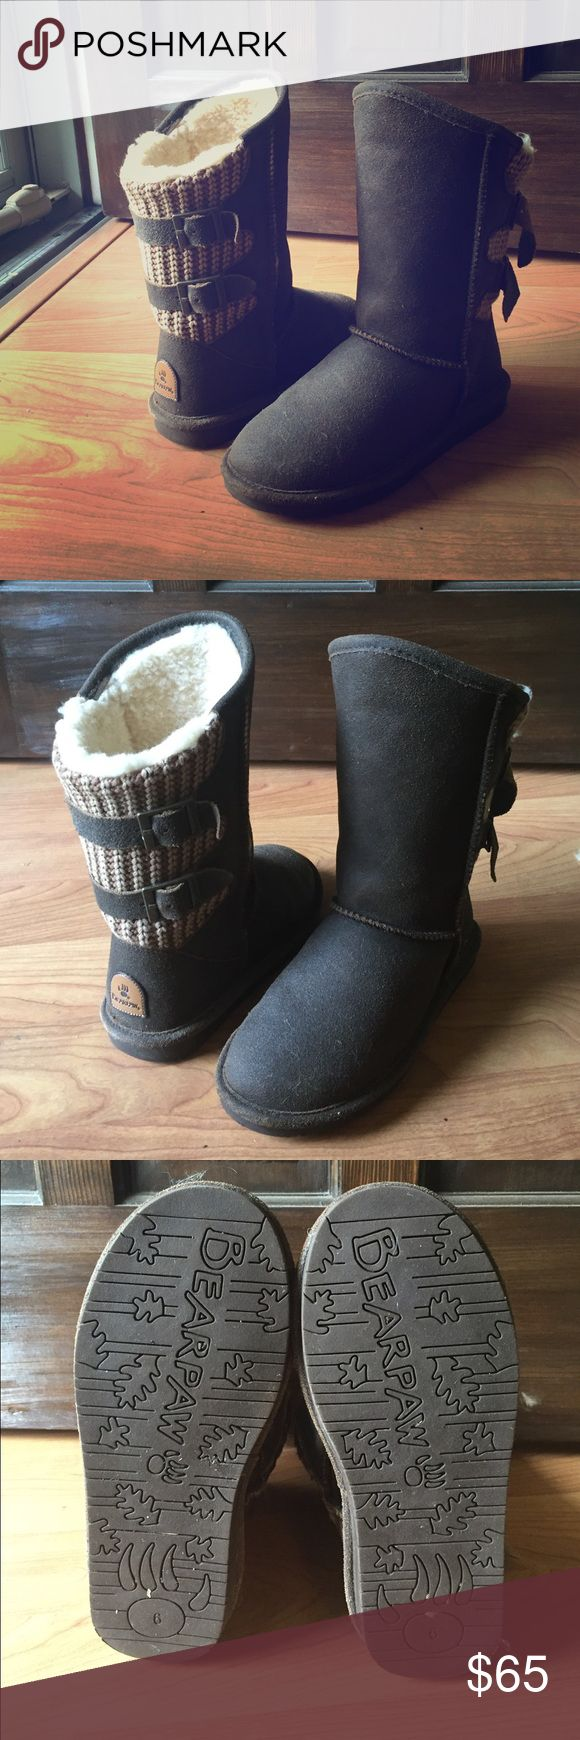 LIKE NEW bearpaw boots Super cute boots with a high-low cut and a sweater accent with buckle straps. Like new! Purchased as a gift for my grandma and she wasn't about that life. Worn once as to not hurt my feelings. Oh well, your gain! BearPaw Shoes Winter & Rain Boots